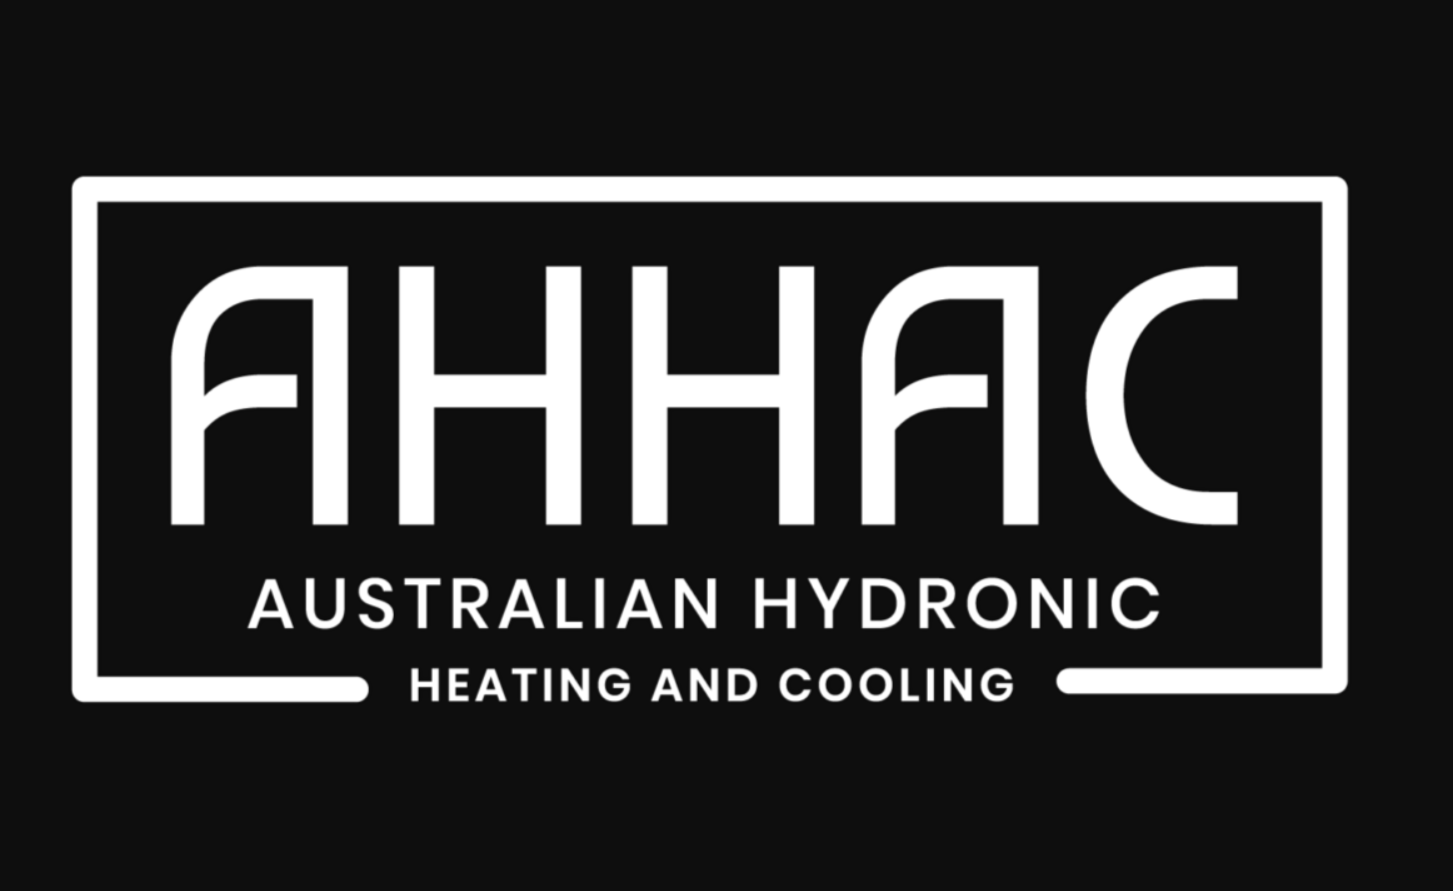 Australian Hydronic Heating and Cooling